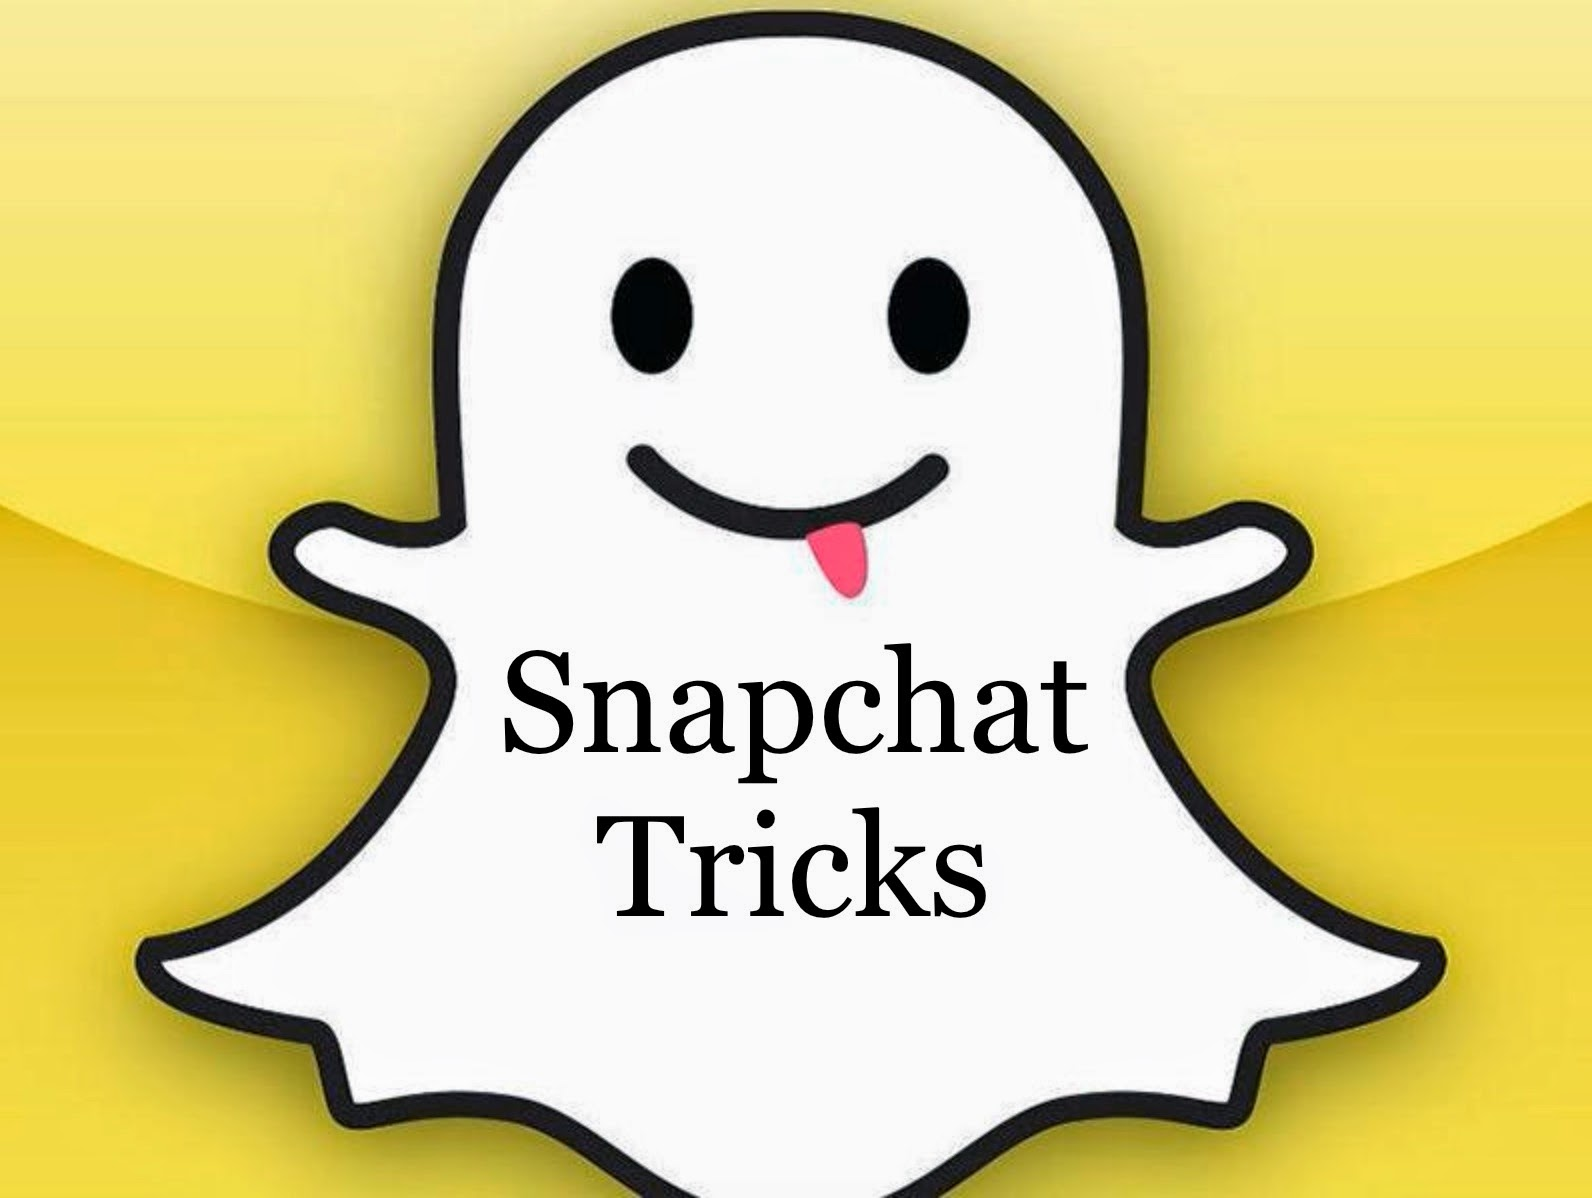 news about latest snapchat tricks 2014